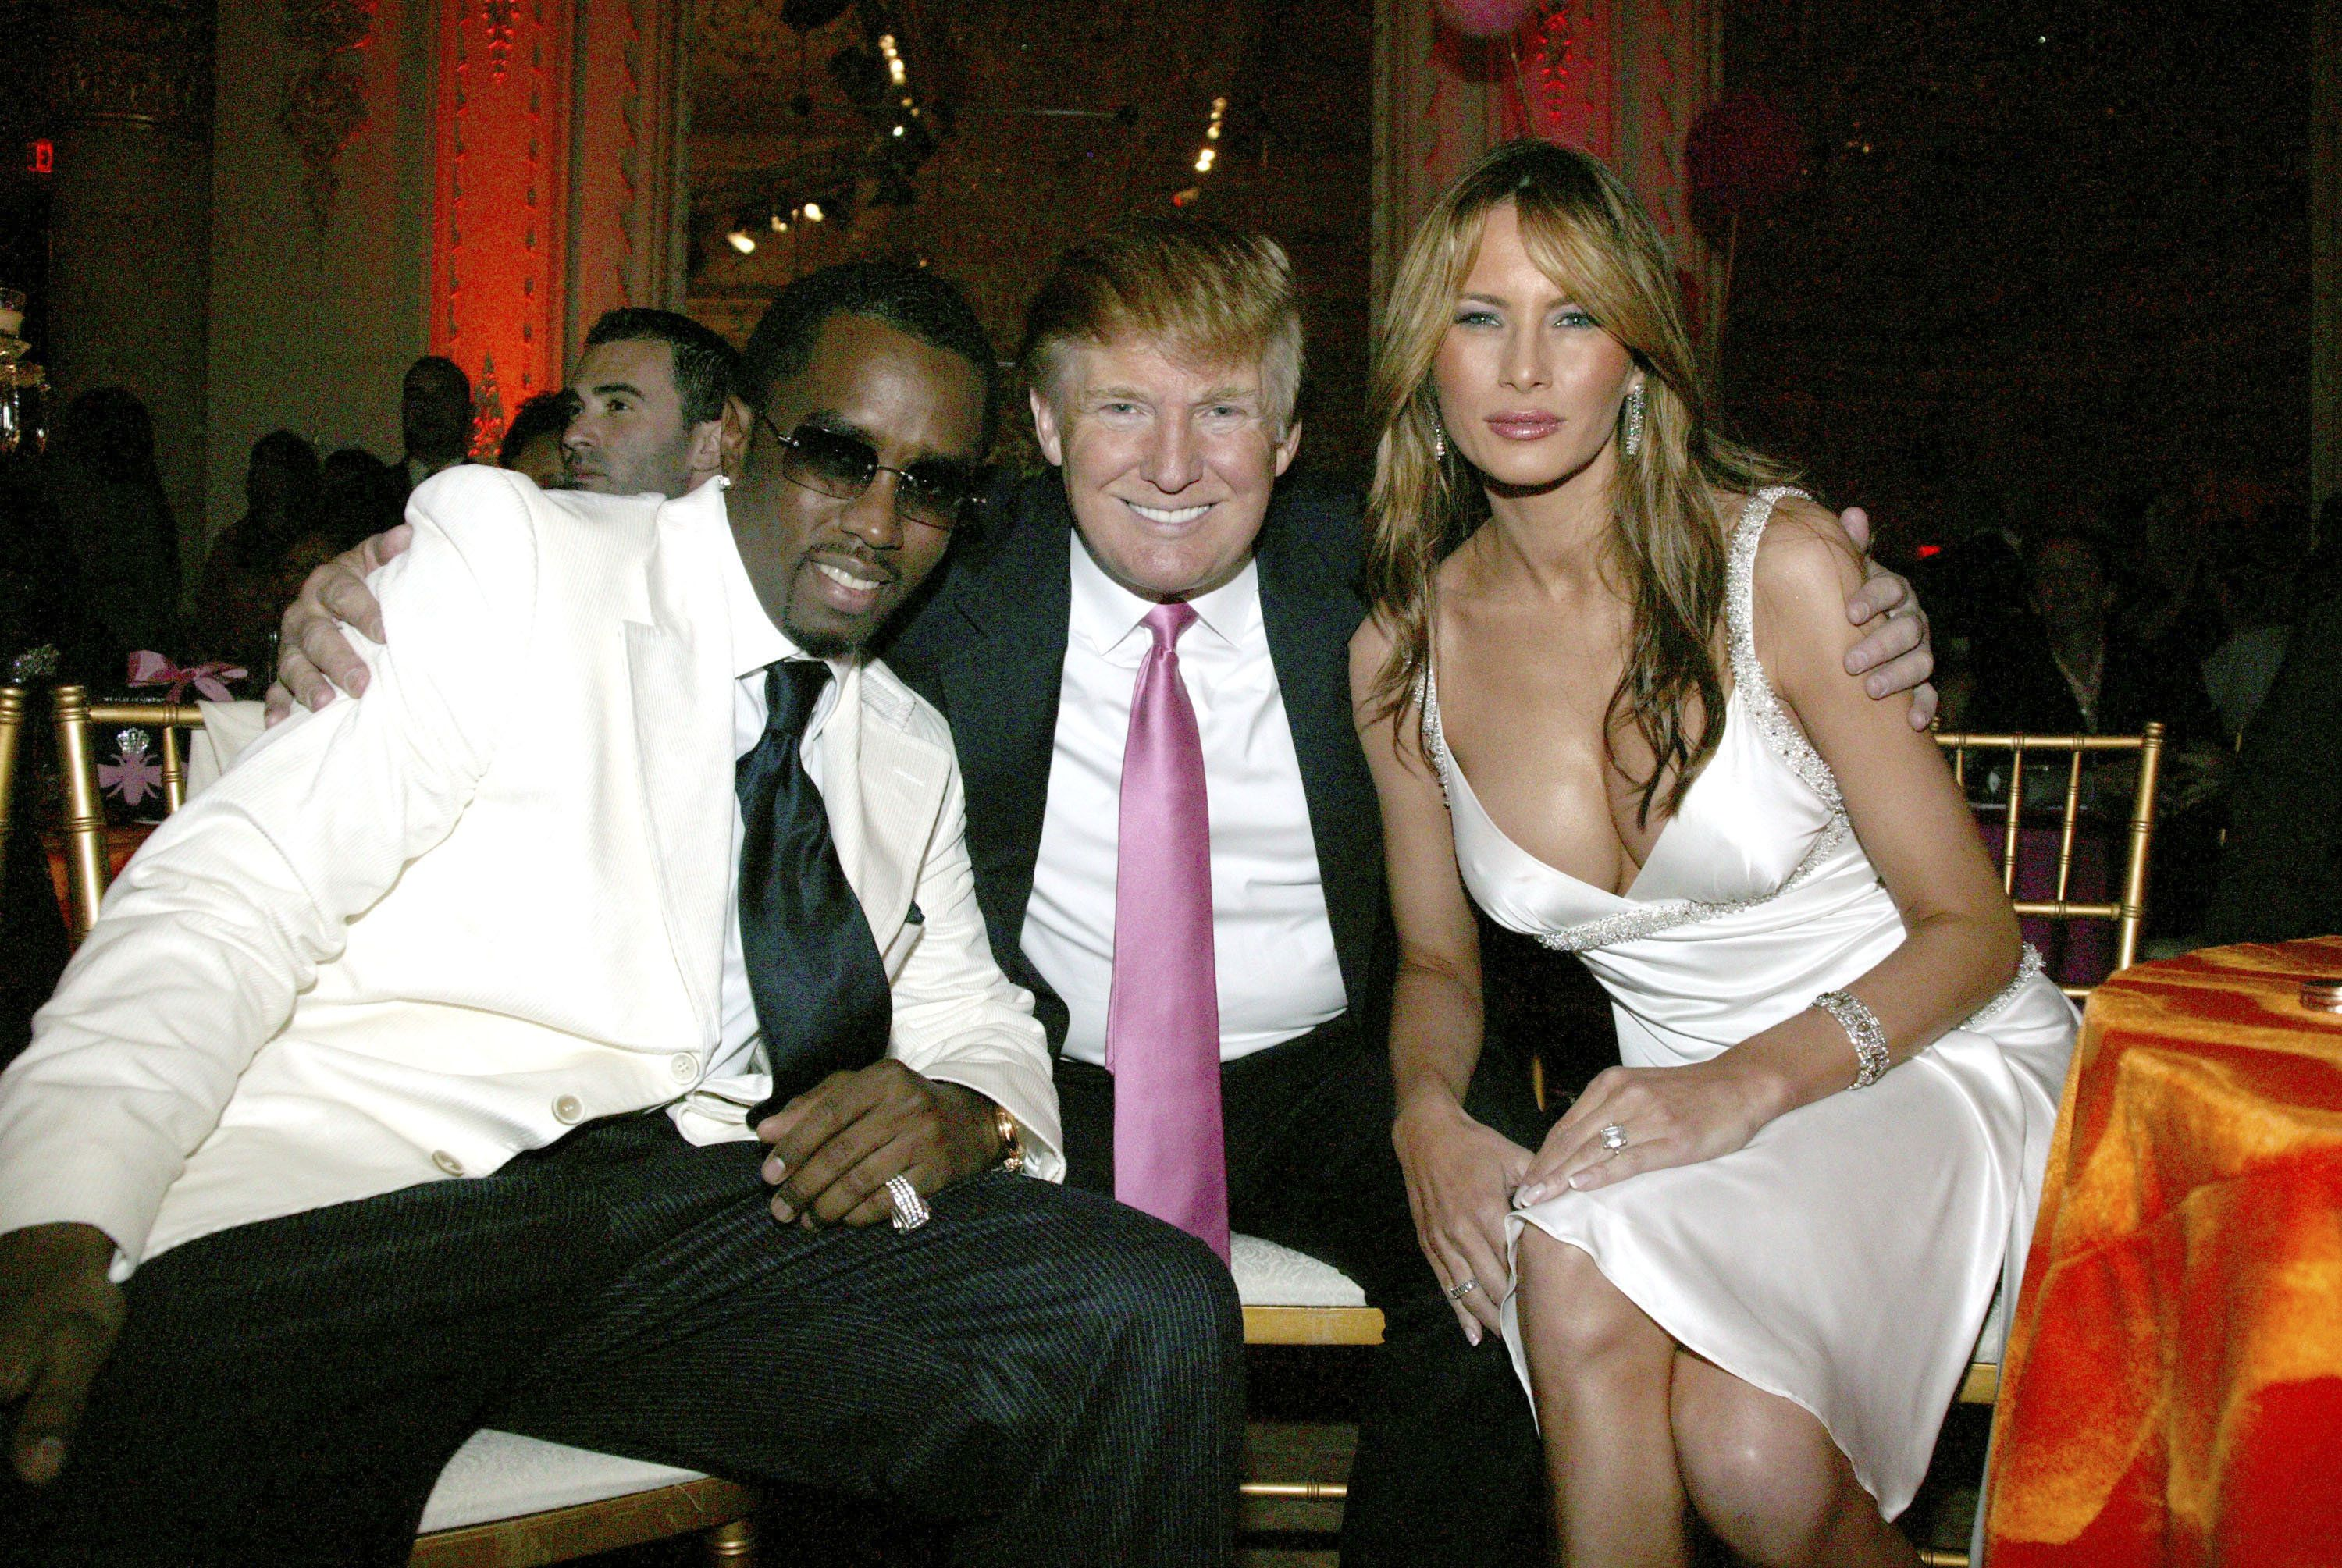 Sean 'P. Diddy' Combs, Donald Trump and Melania Trump (Photo by Johnny Nunez/WireImage)